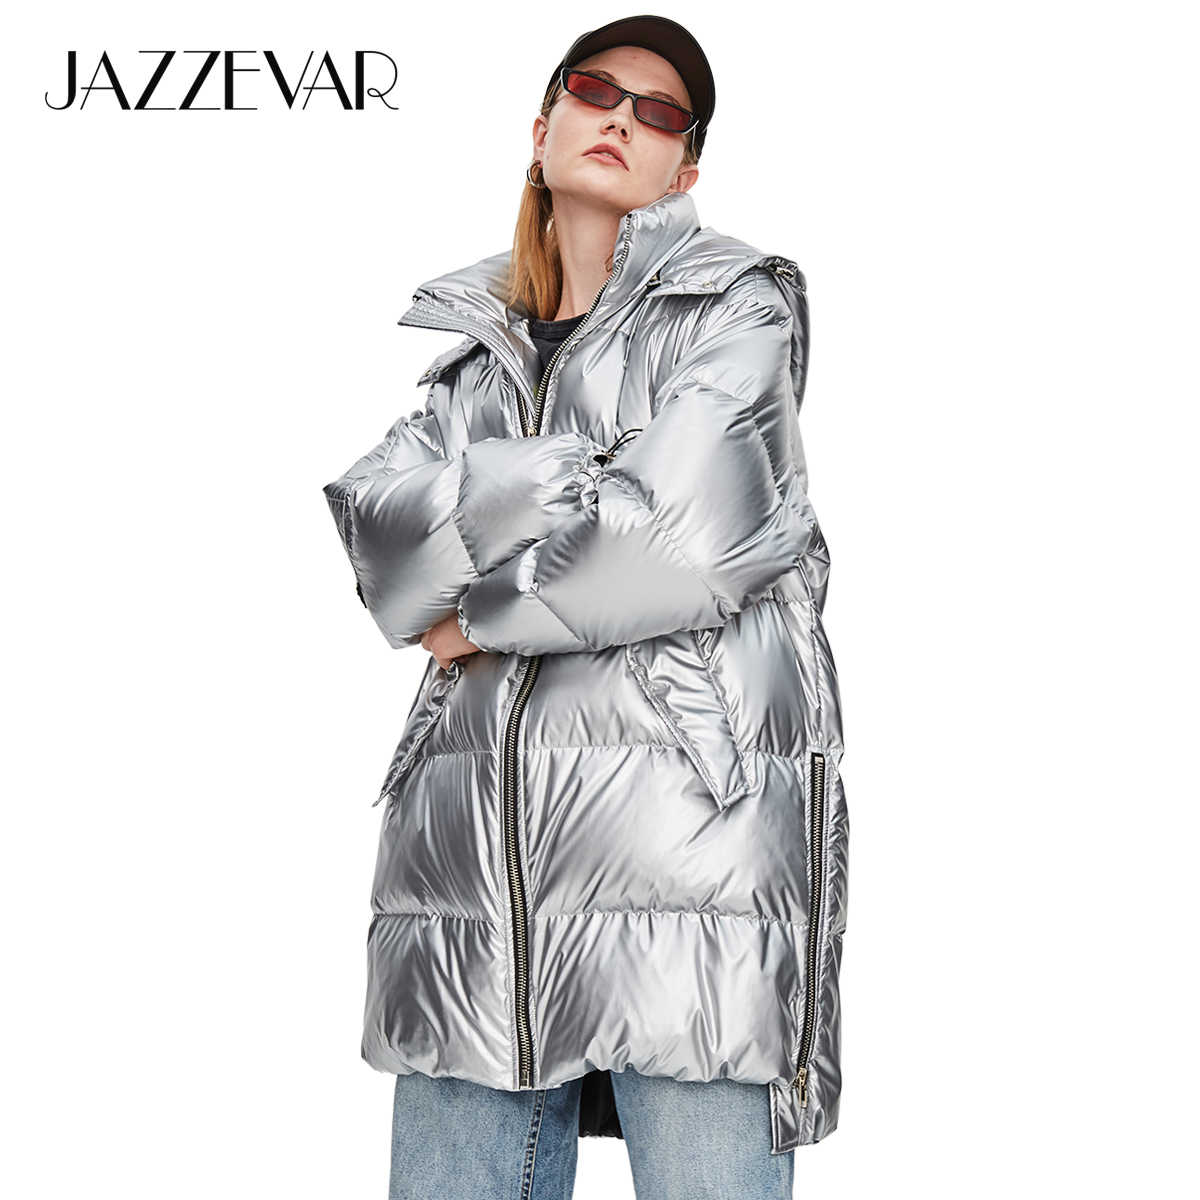 80099af31 JAZZEVAR 2018 Winter New High Fashion Street Womens Edgy Sliver Long Down  Jacket Cool Girls Zipper Hooded Down Coat Outerwear